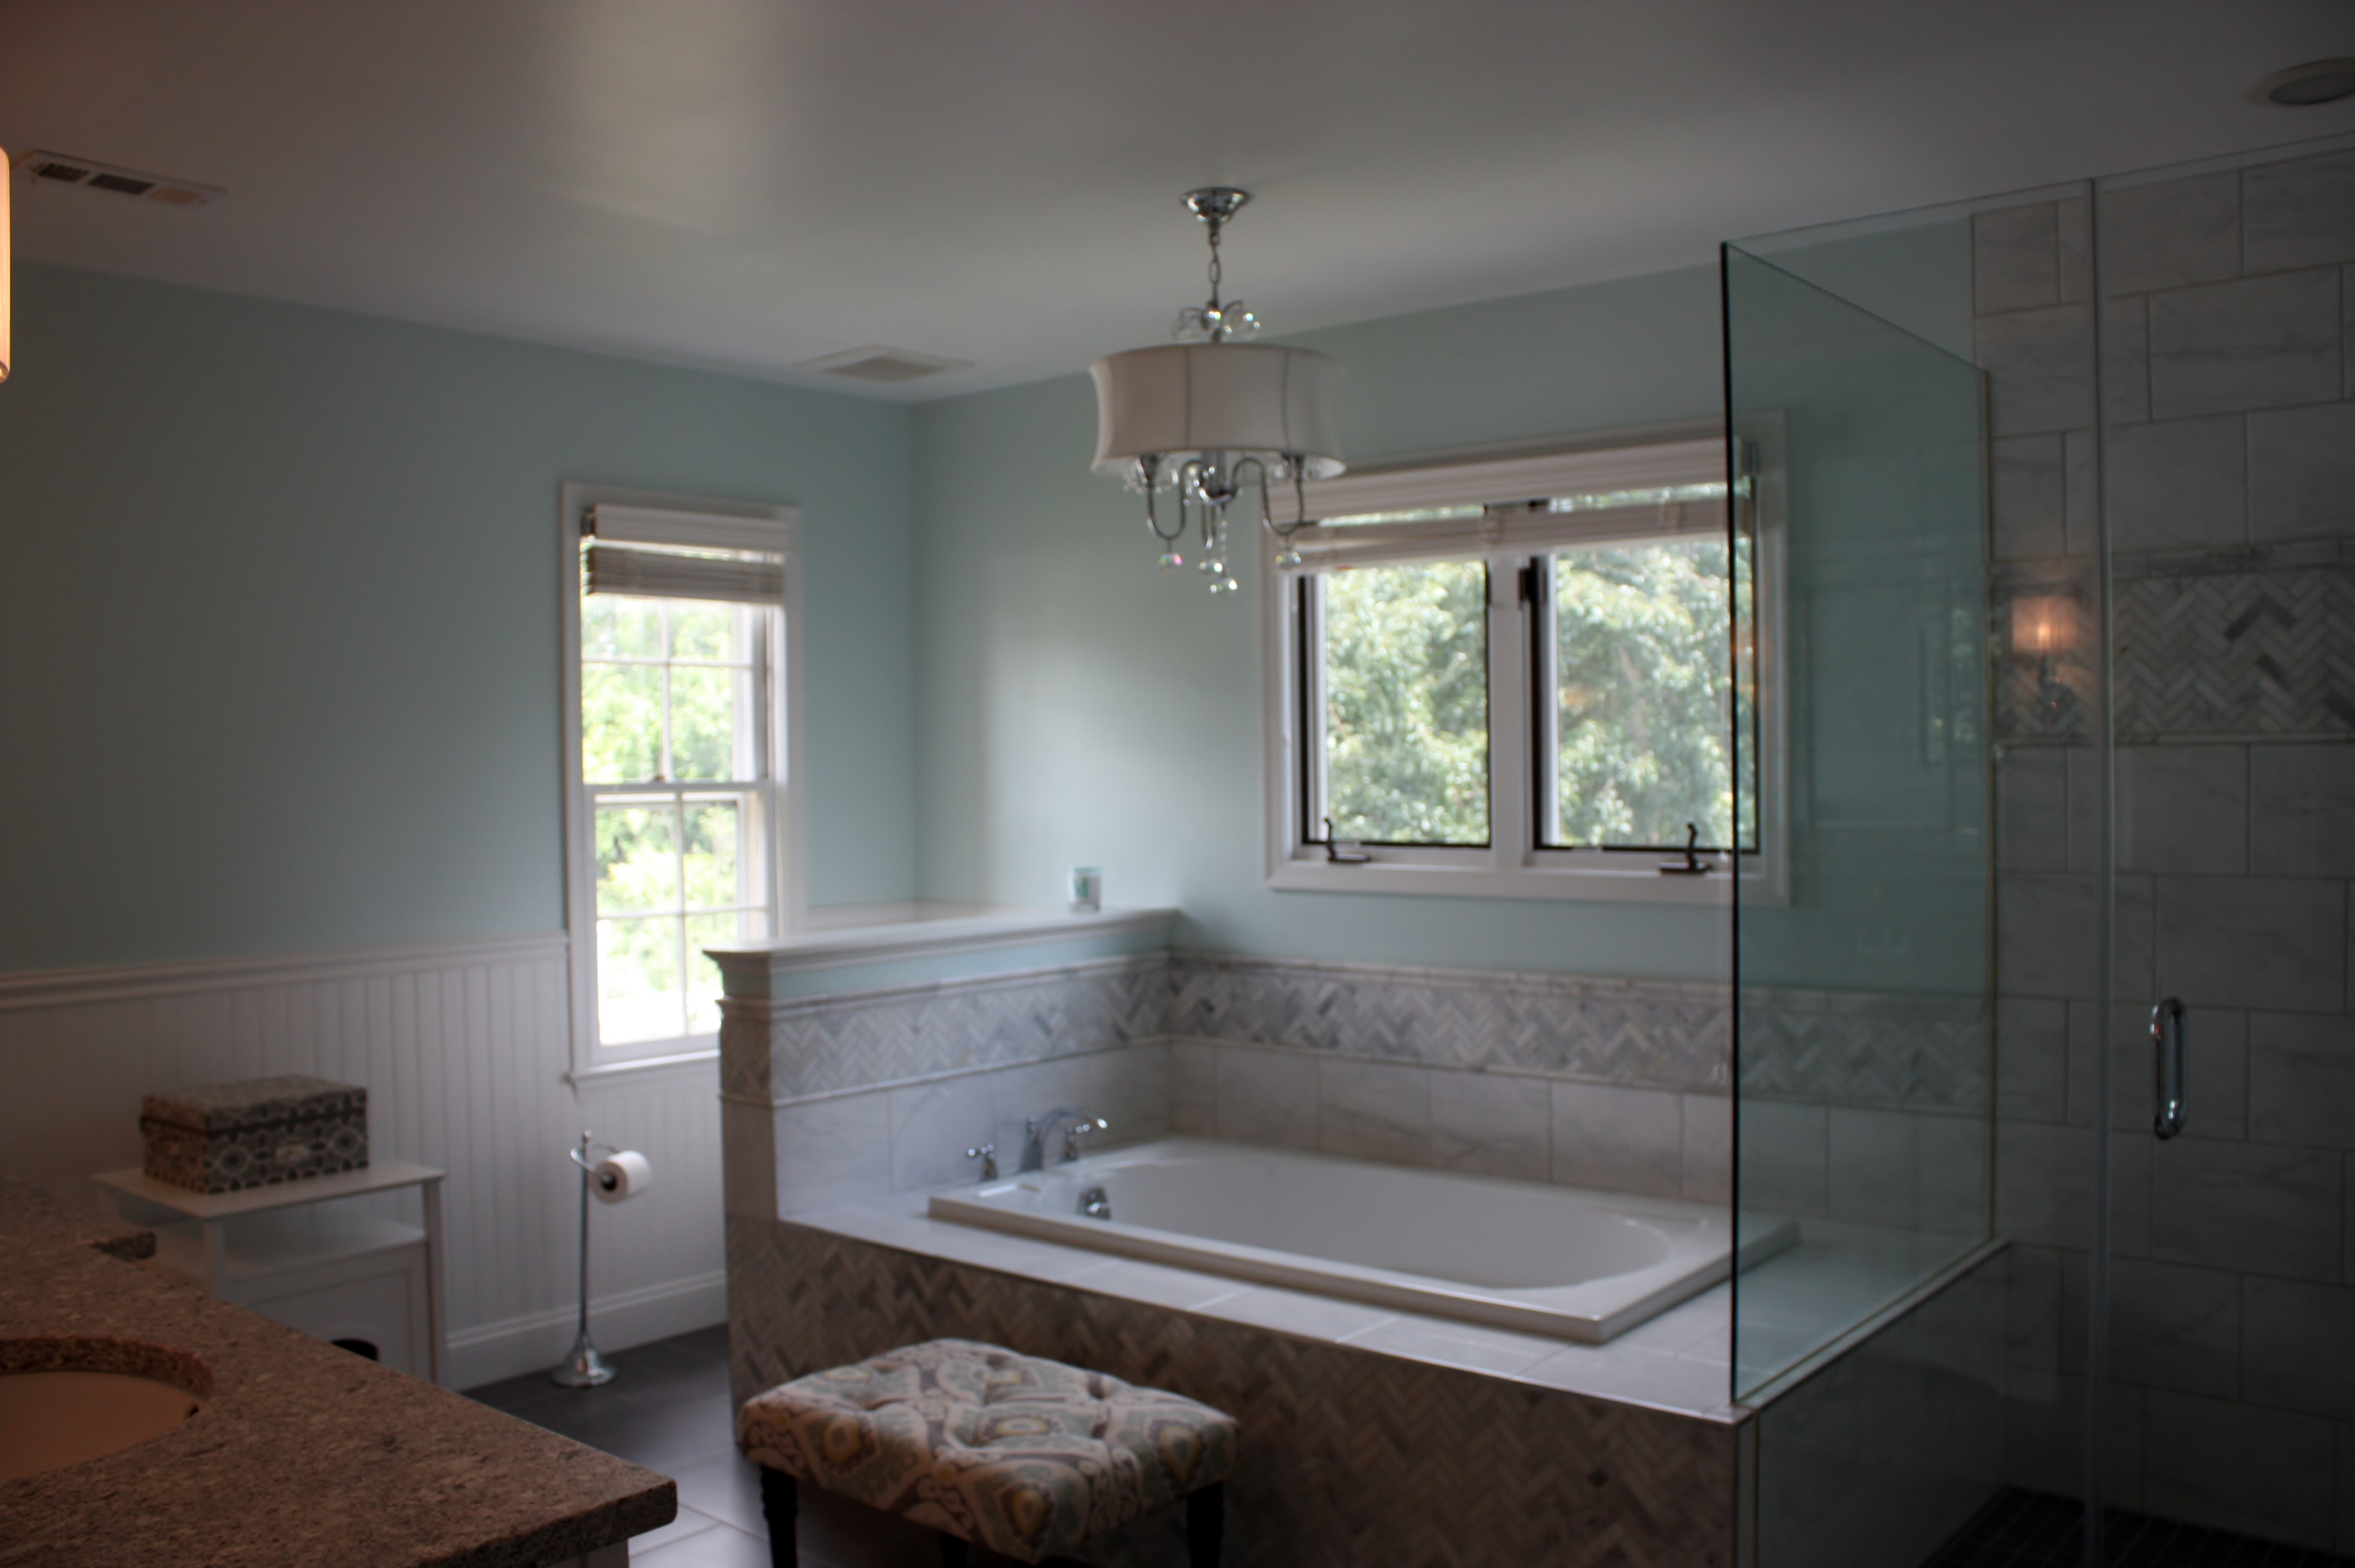 Bathroom Renovation and Repair Services in Fairfax VA